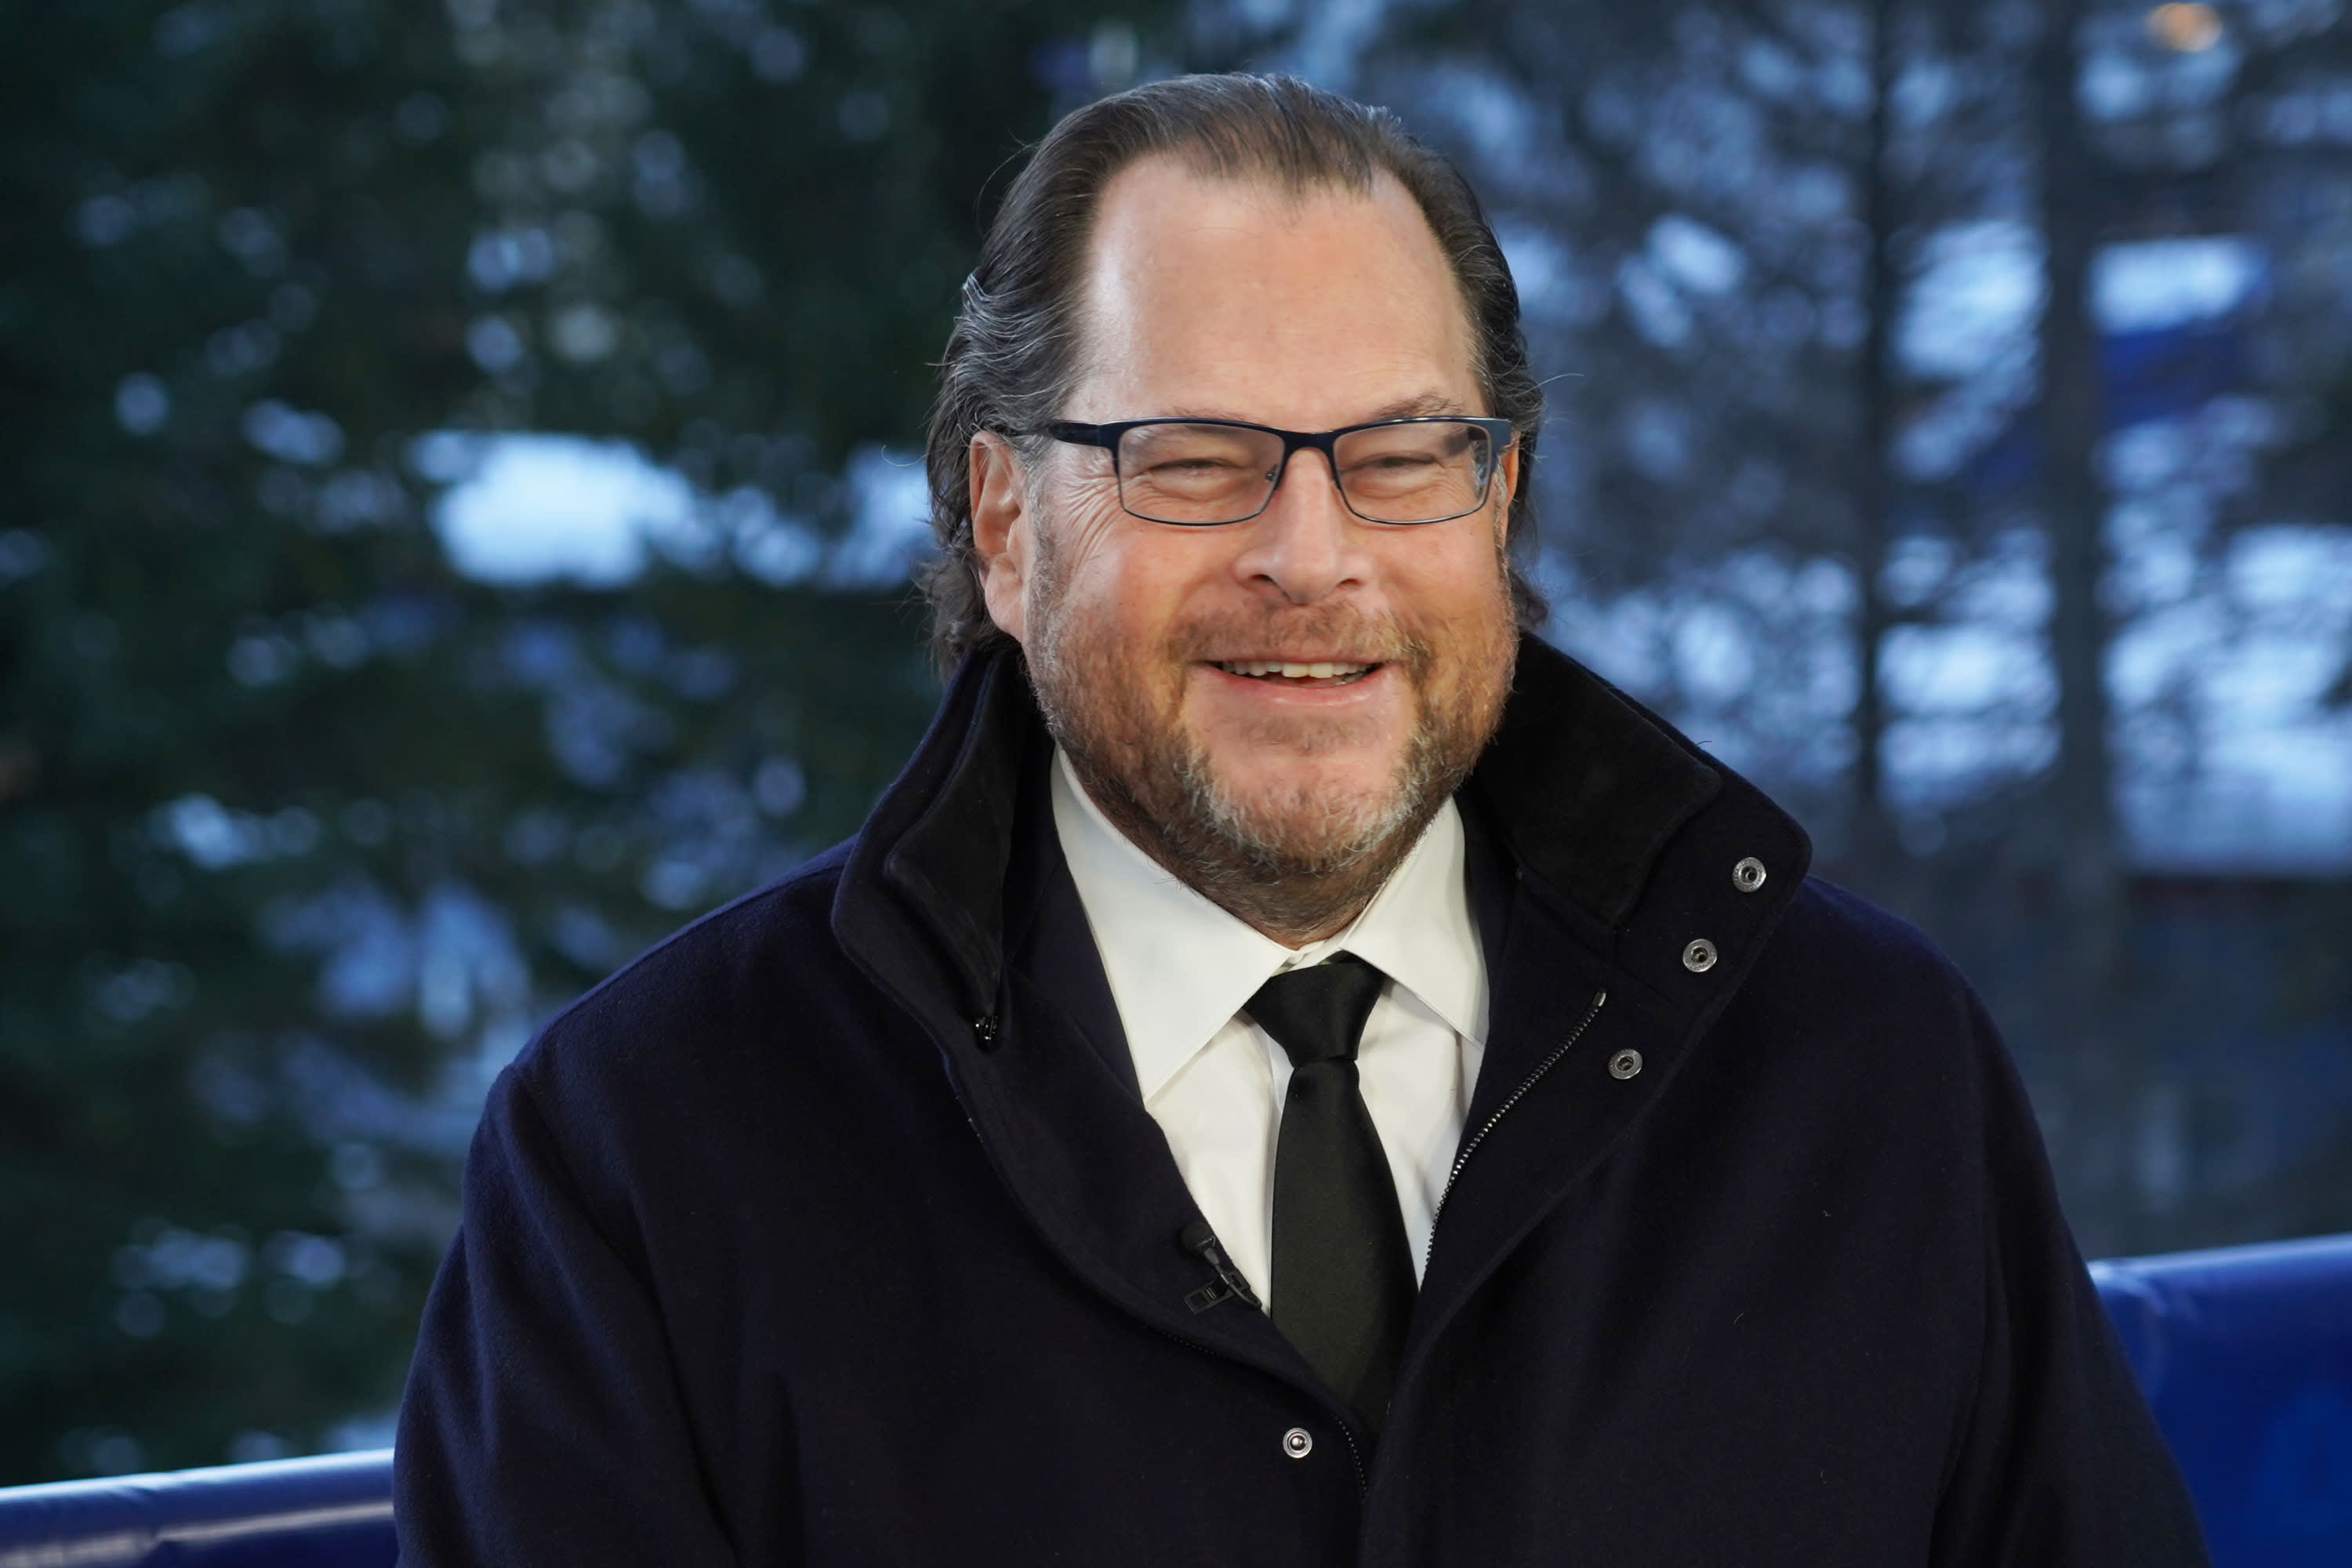 Salesforce promises no 'significant' layoffs over the next three months, even with coronavirus spreading